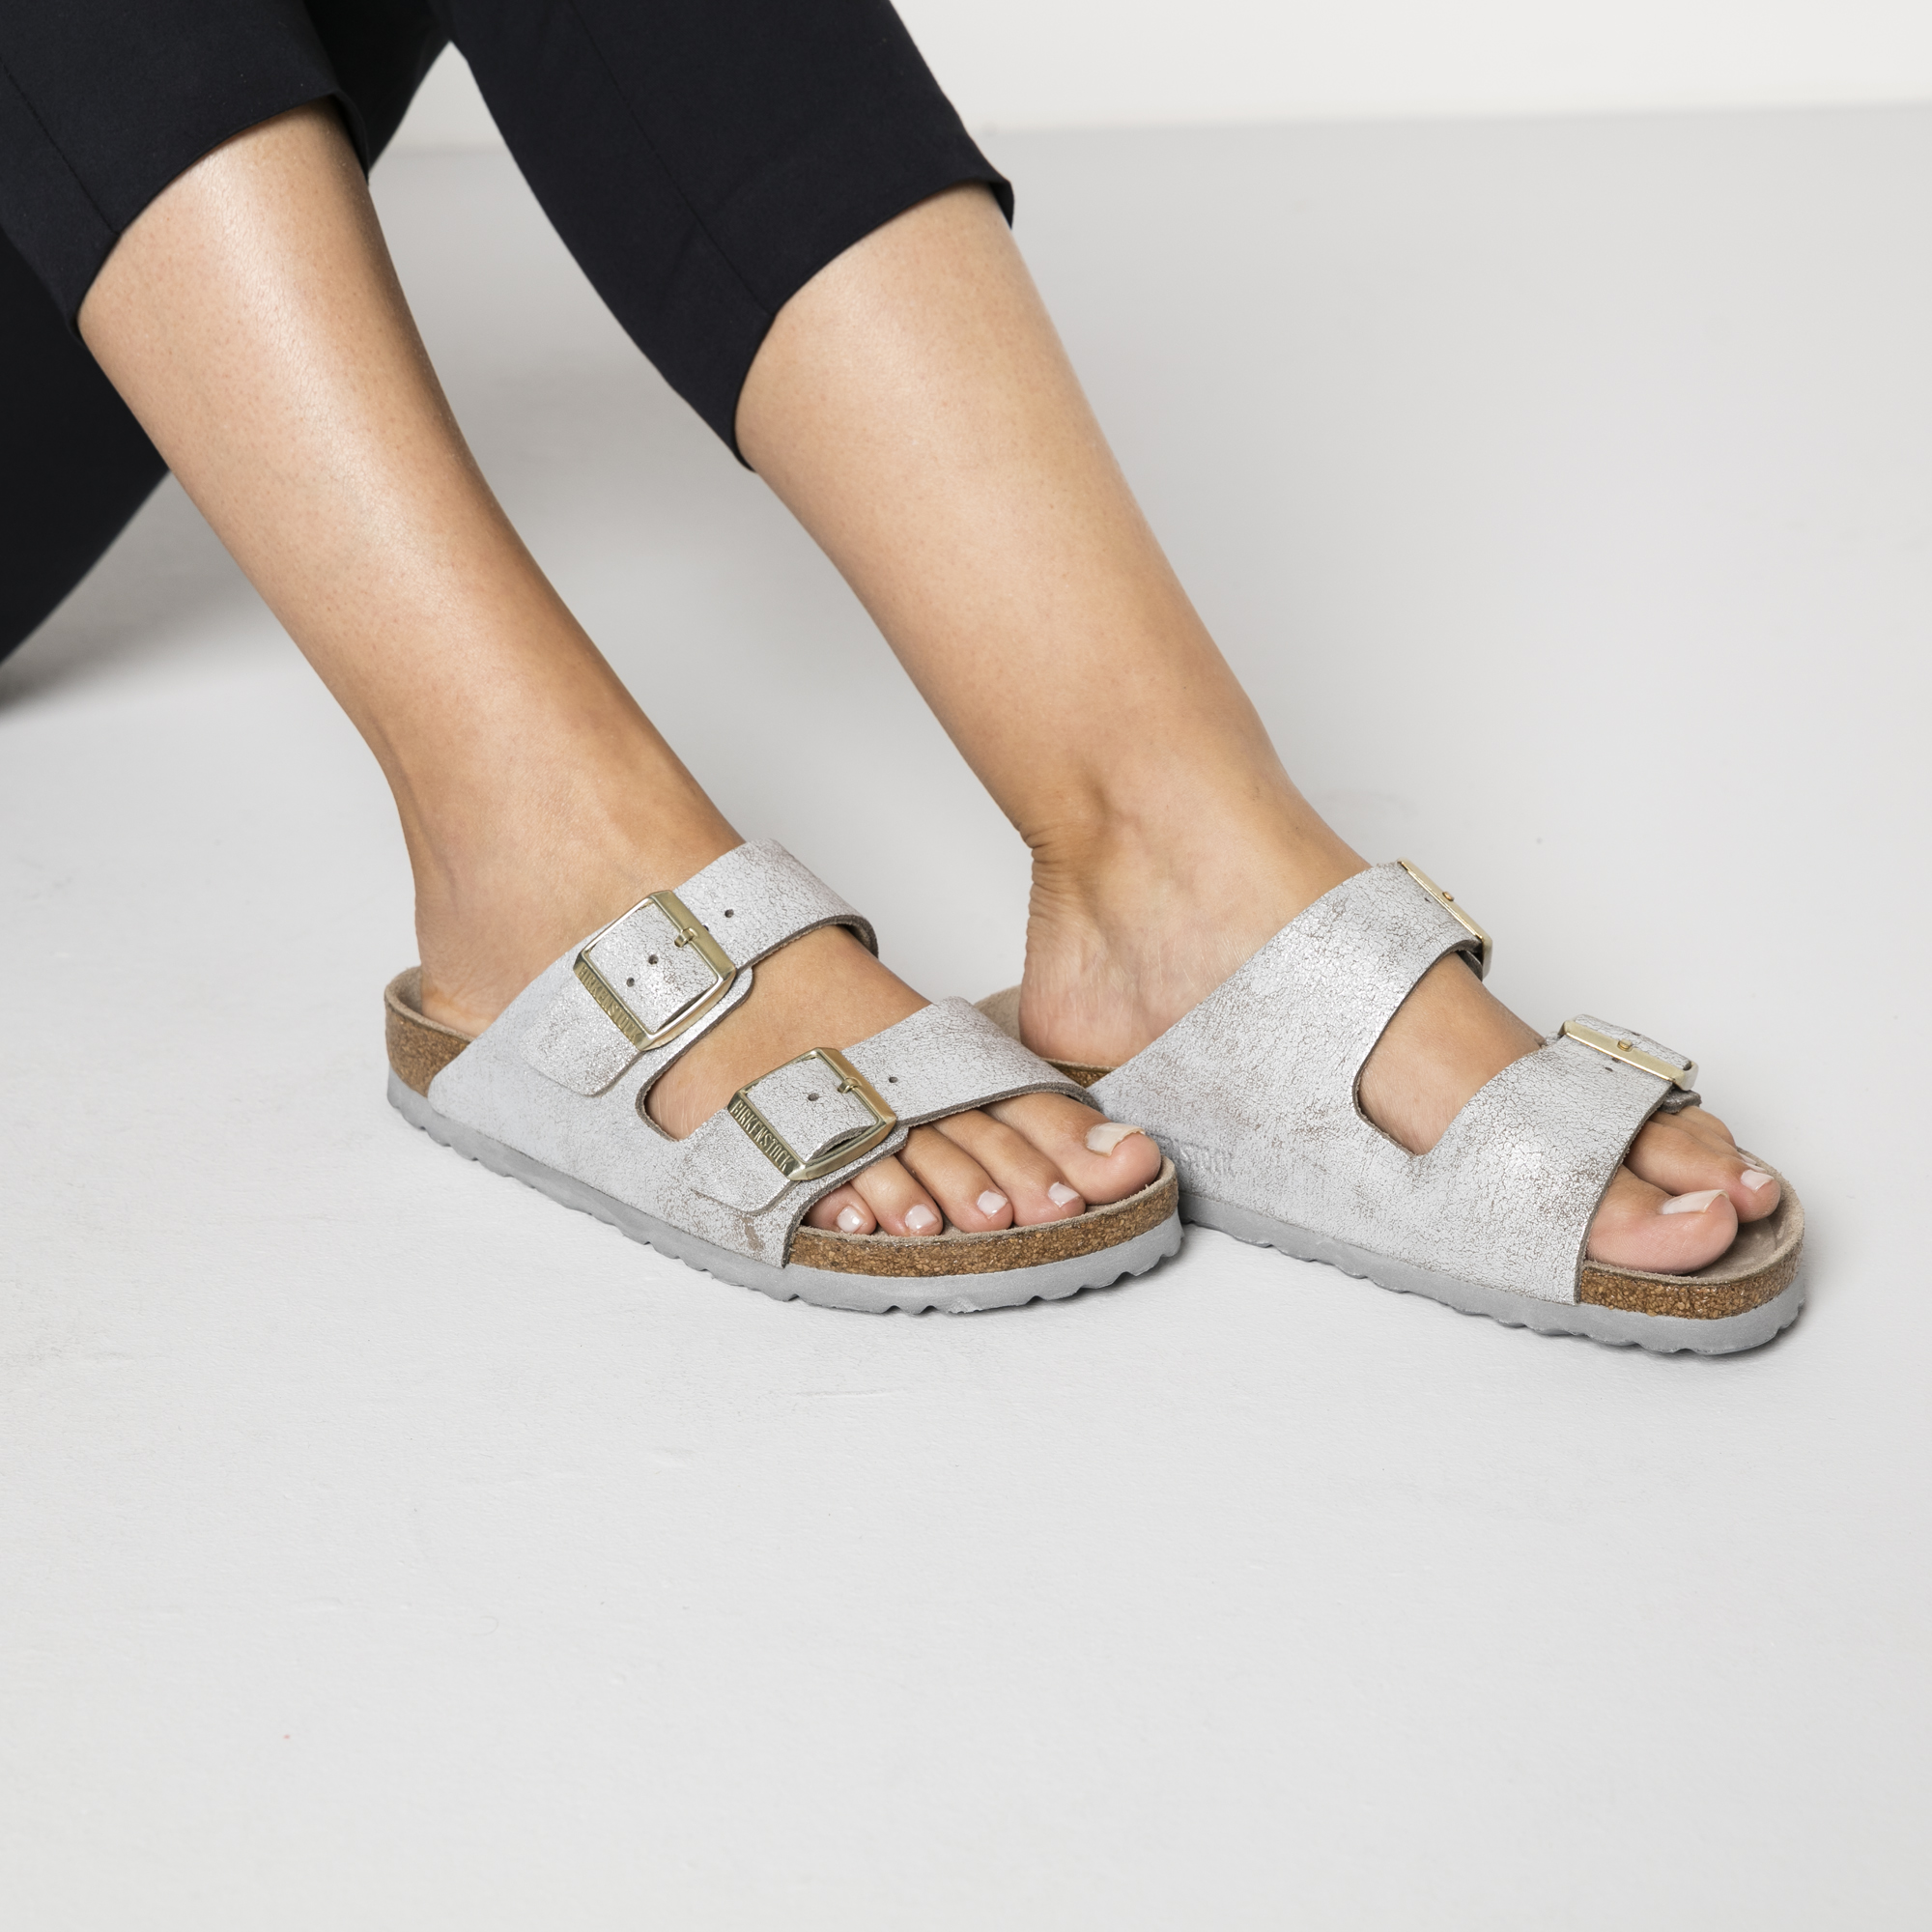 cad60a34623 ... Arizona Suede Leather Washed Metallic Blue Silver